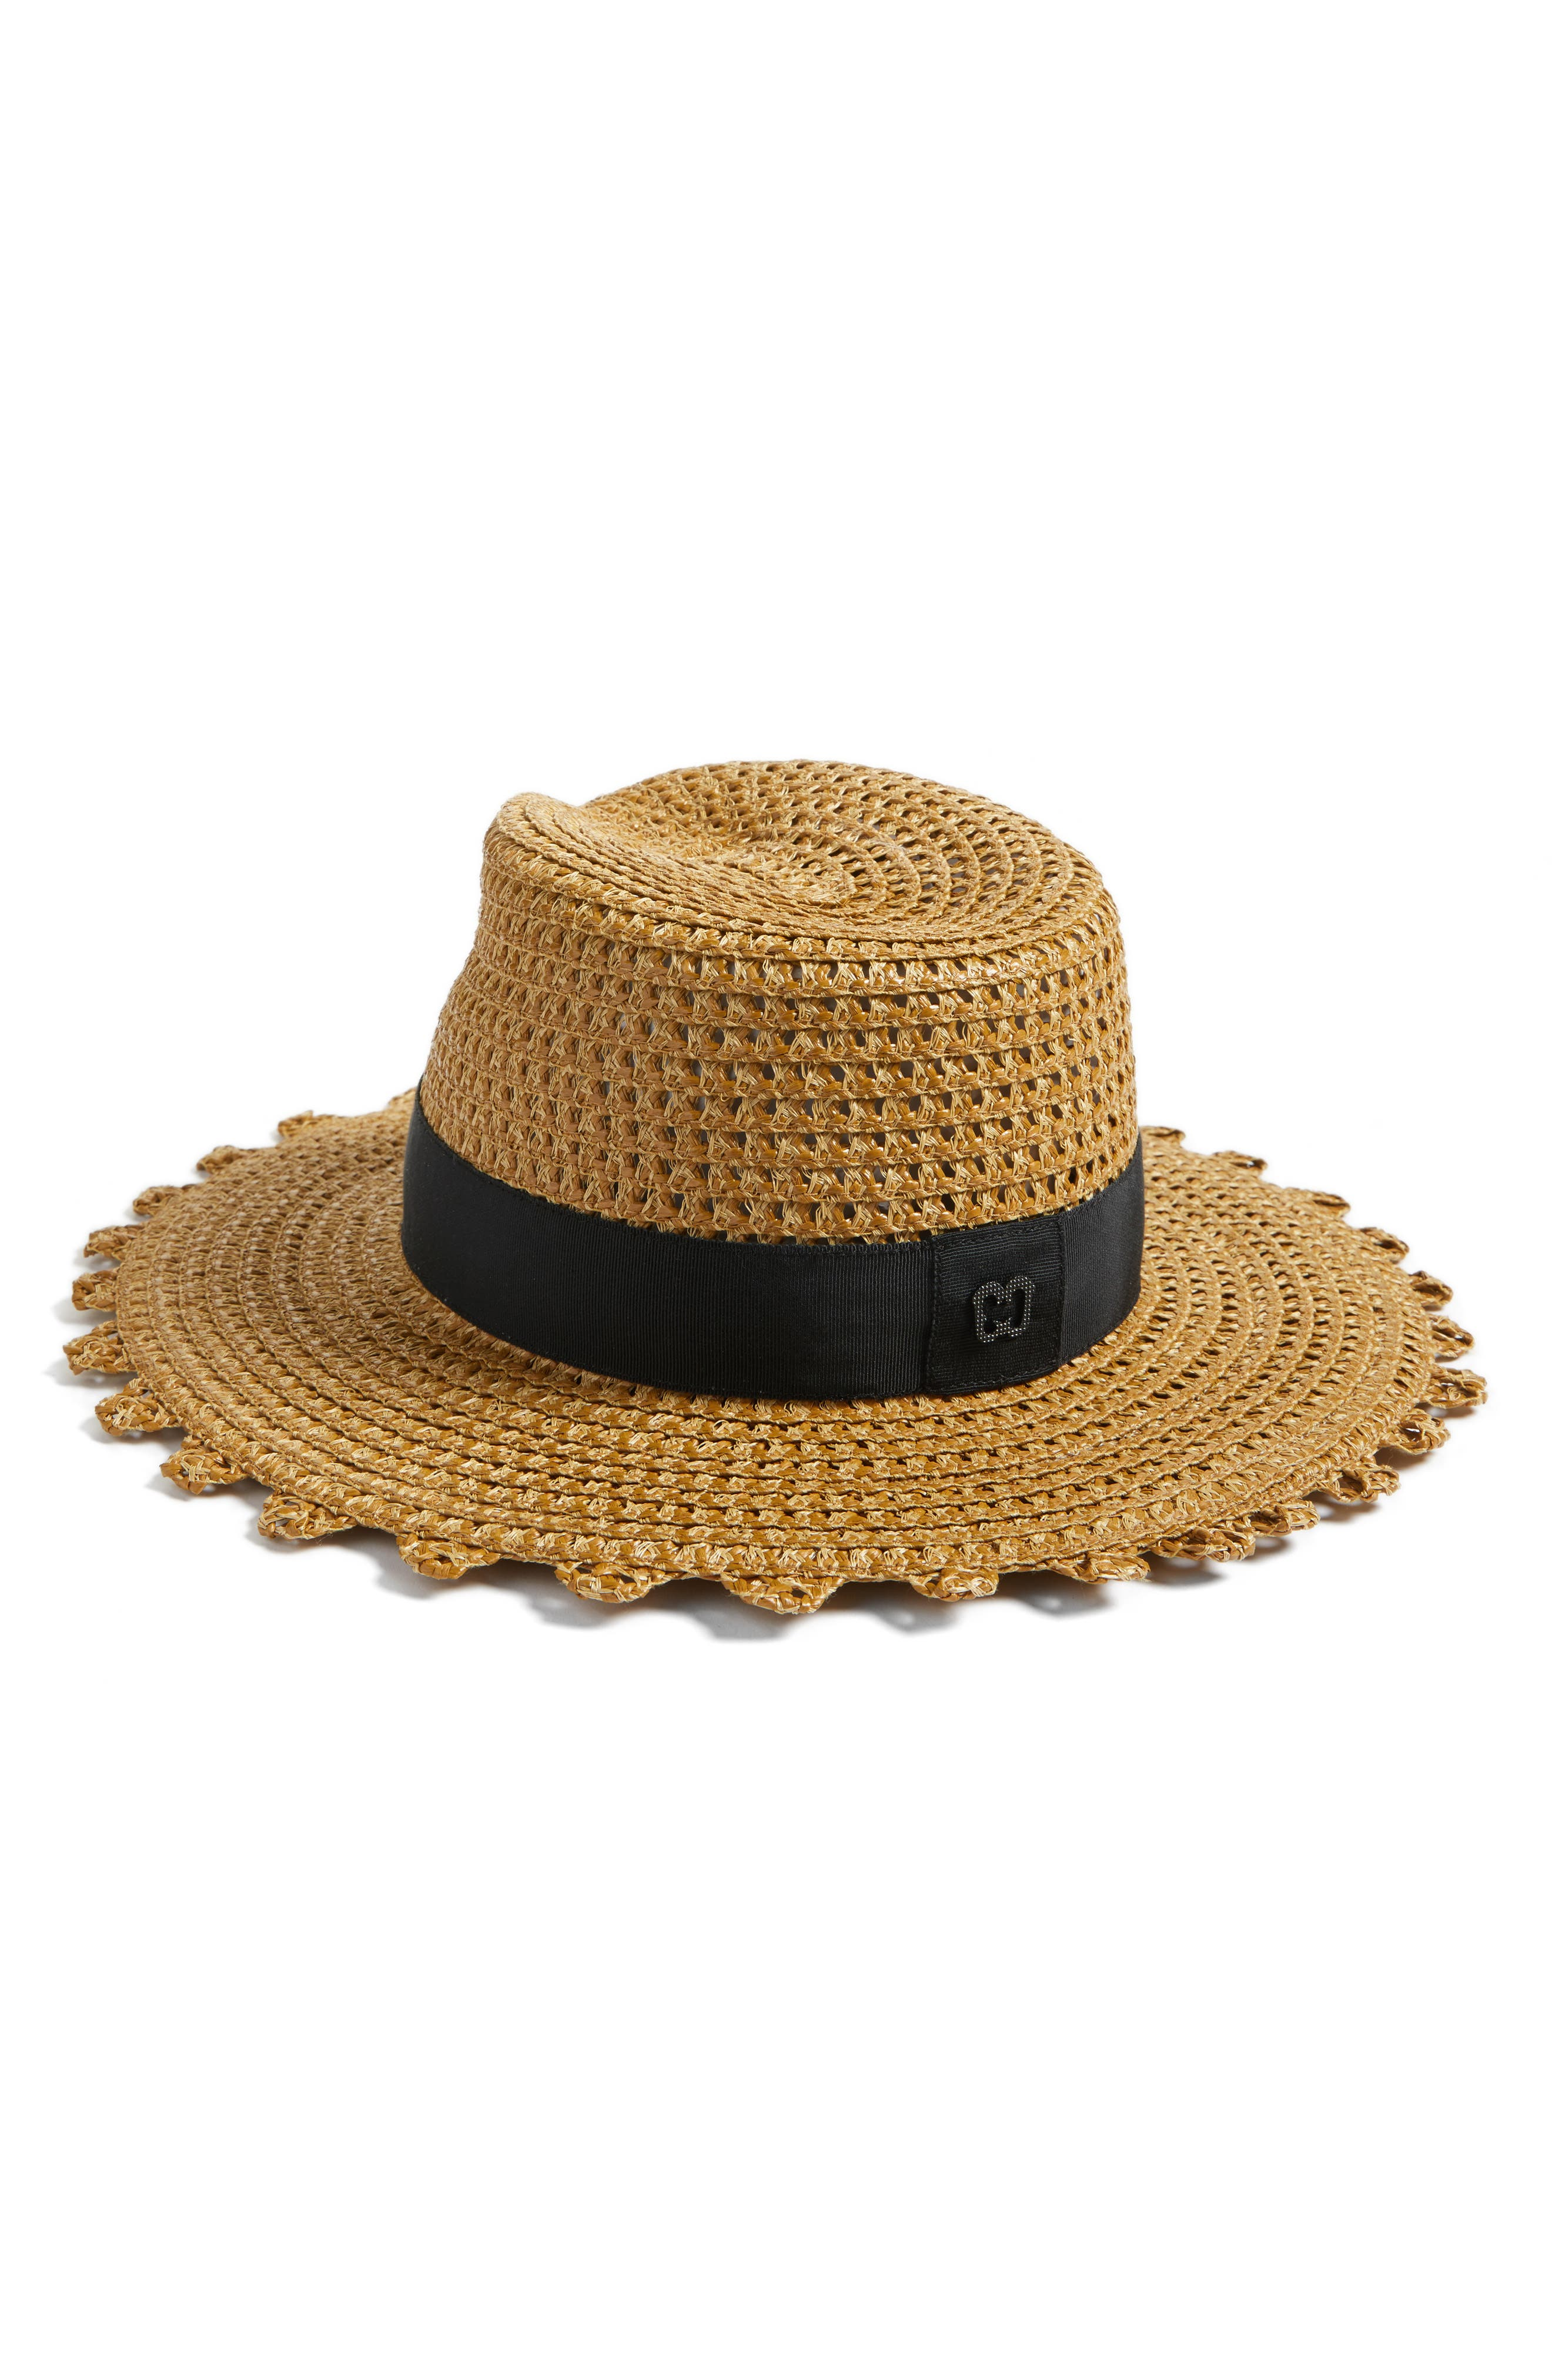 Cannes Squishee<sup>®</sup> Straw Hat,                             Alternate thumbnail 3, color,                             Natural/ Black